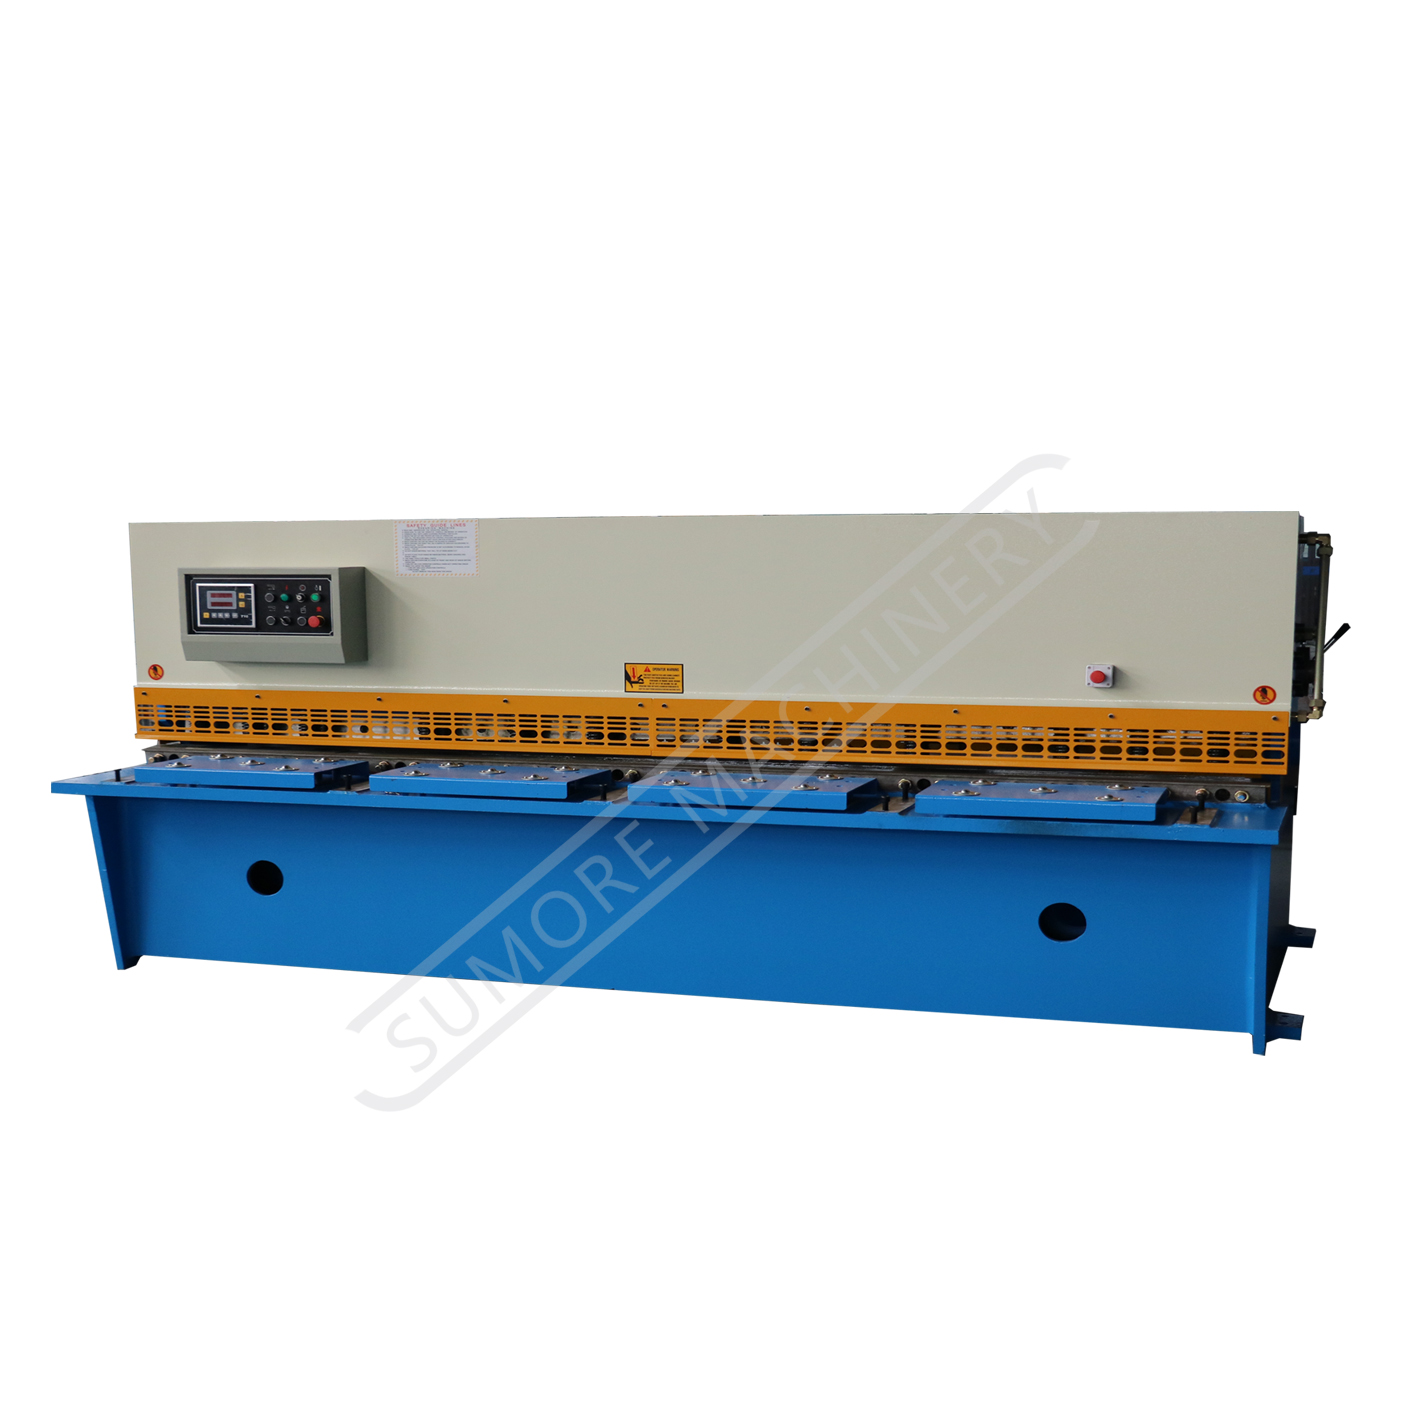 Hydraulic shearing machine guillotine type OEM customized